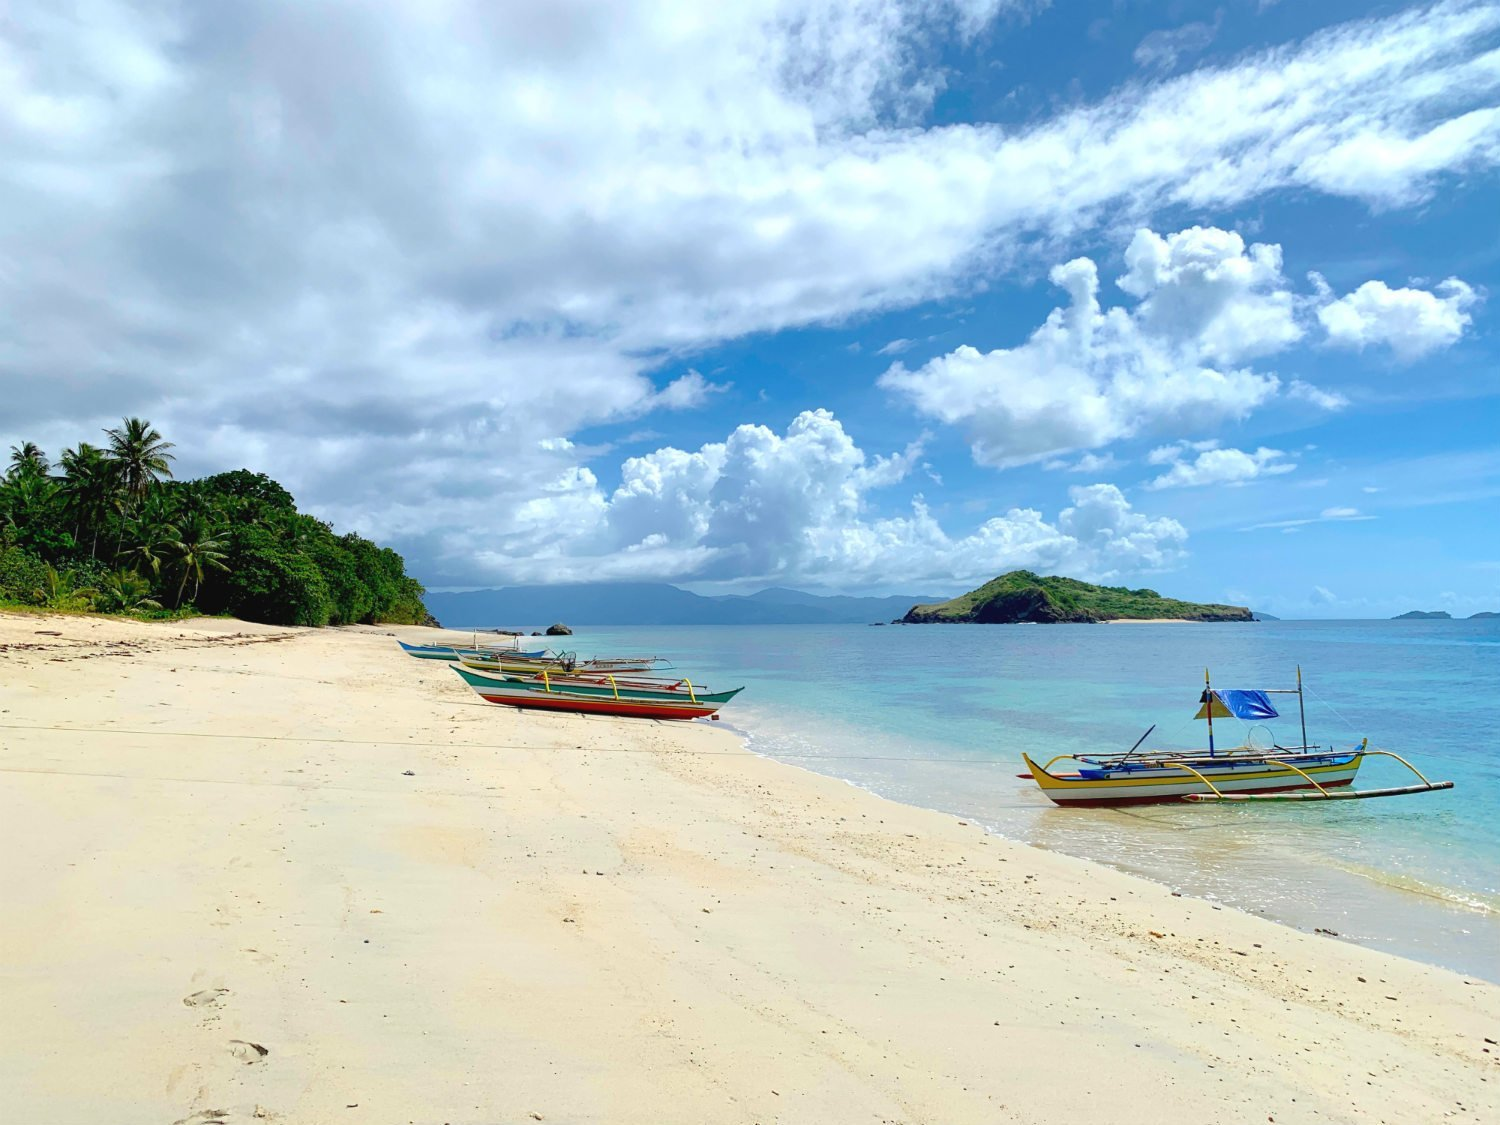 5 excellent reasons to choose the Caramoan Islands over El Nido 5